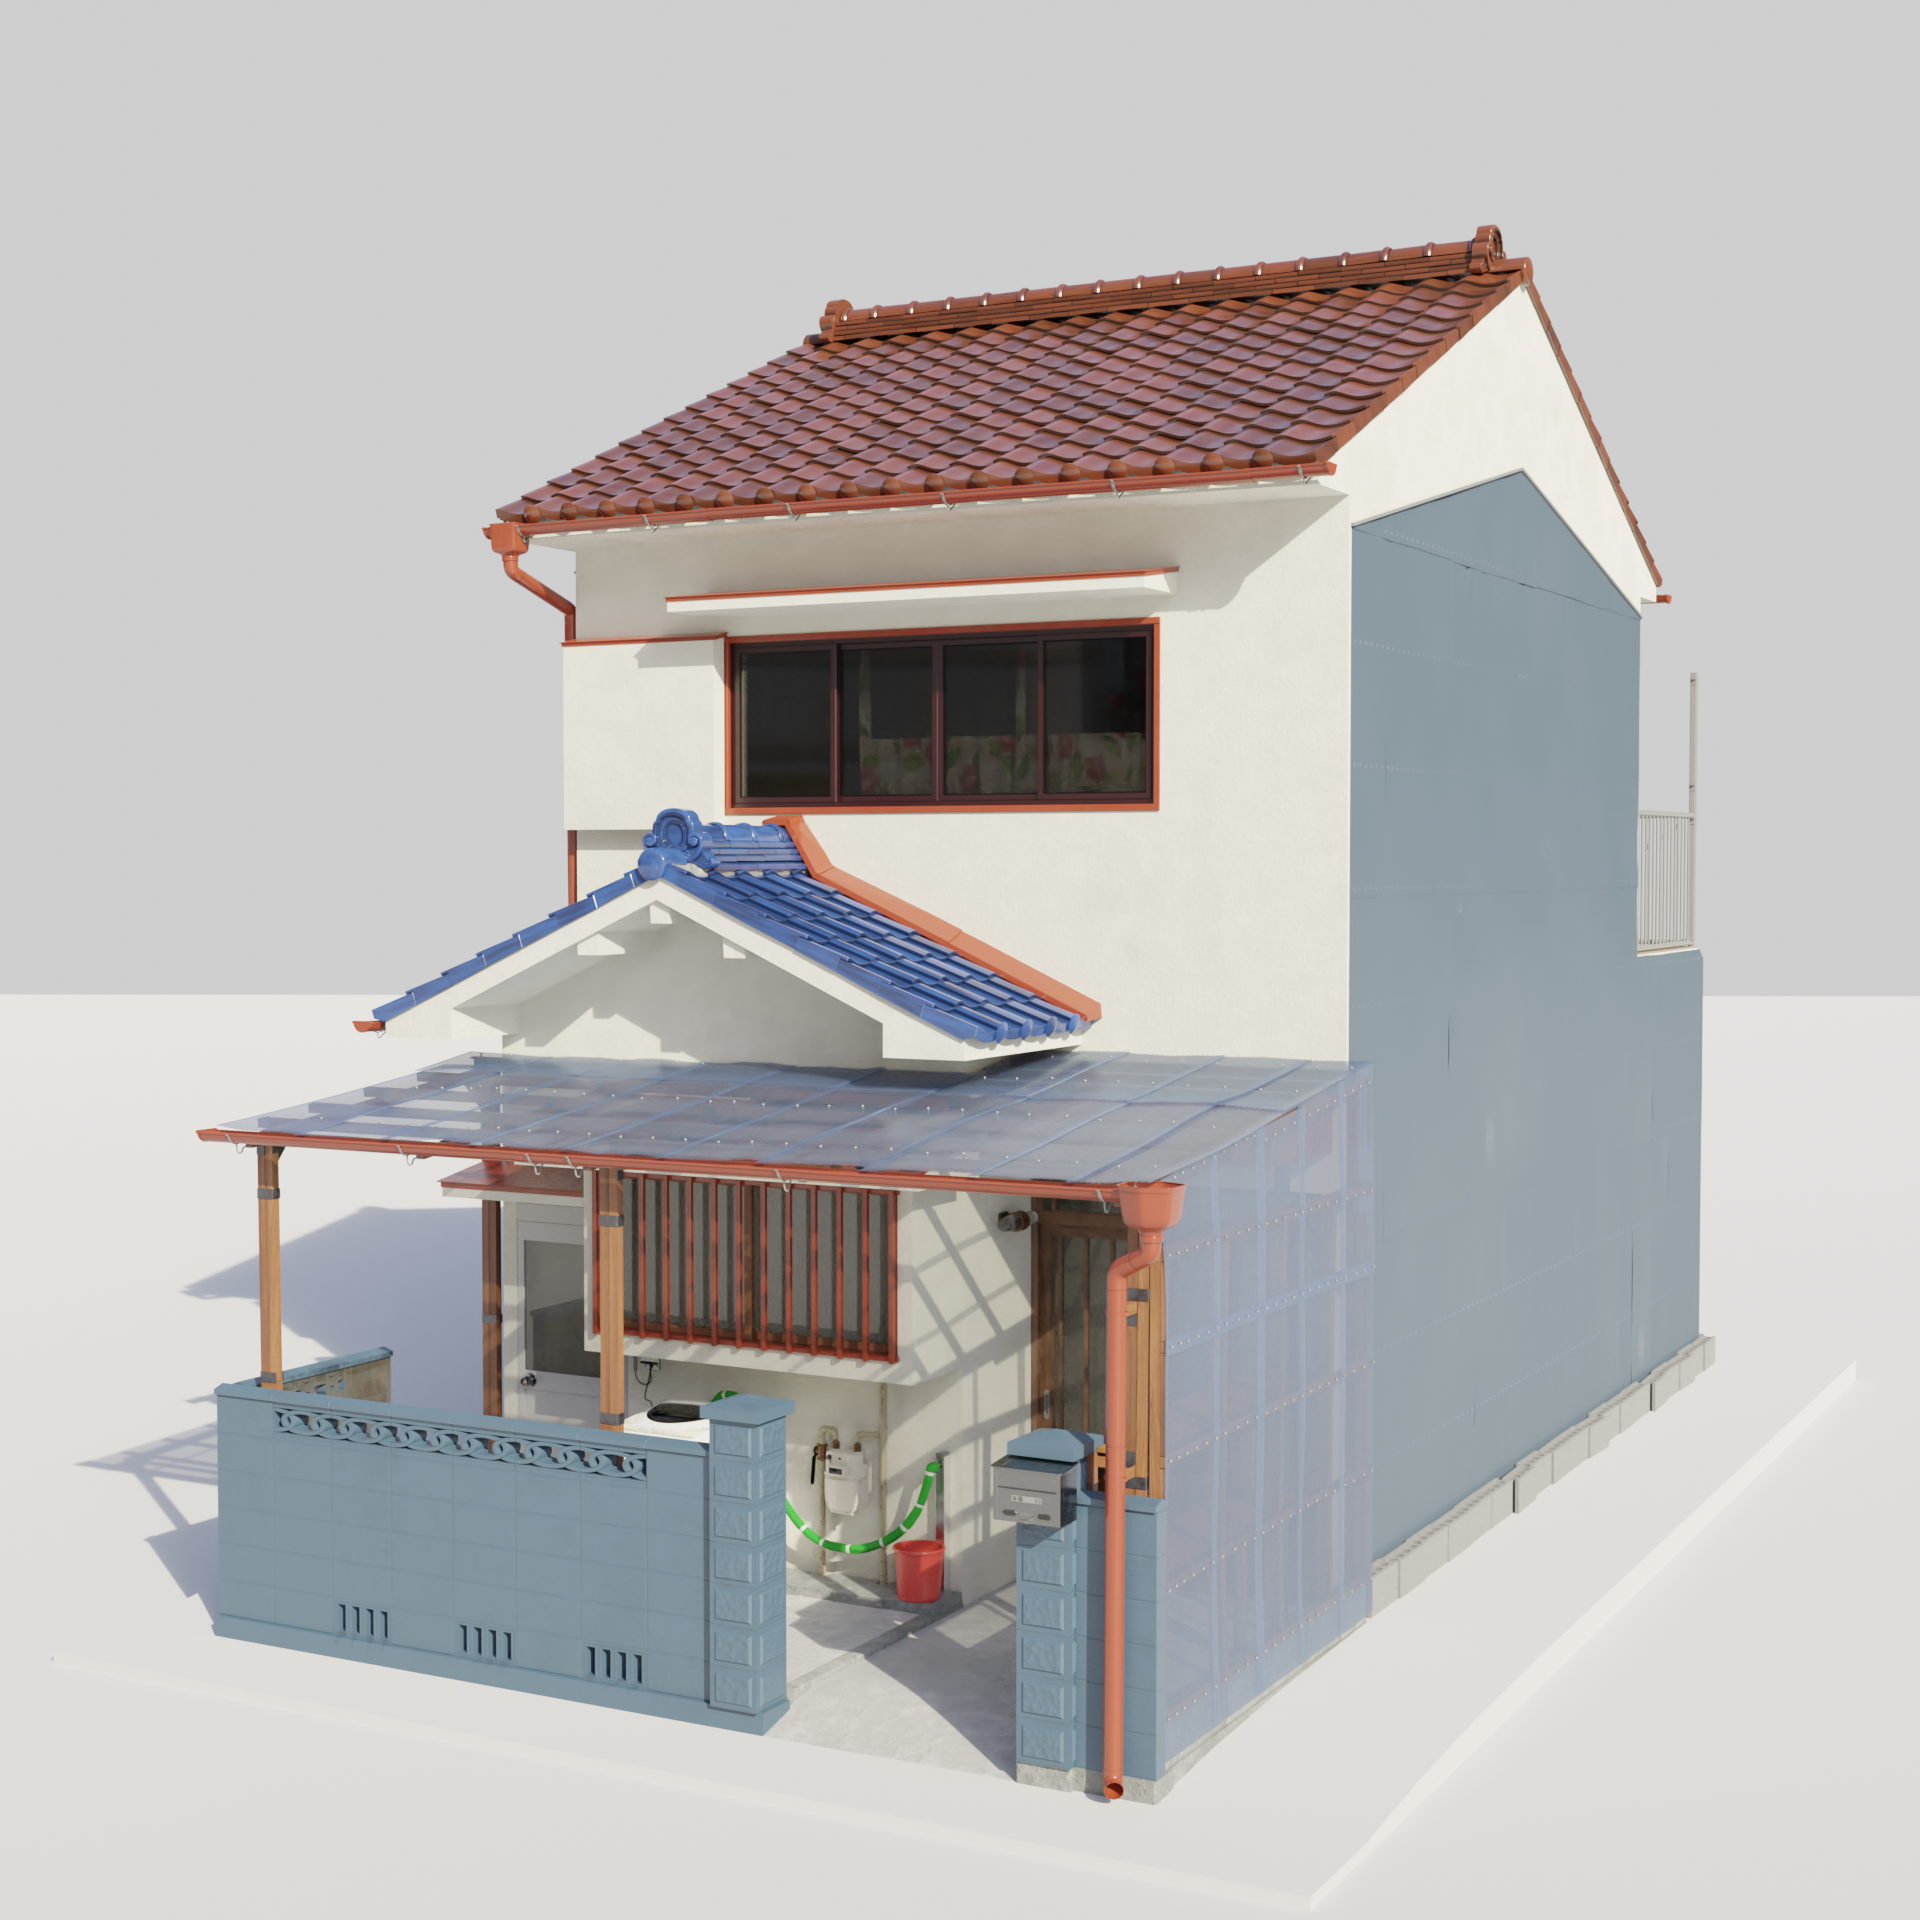 Japanese house preview image 1